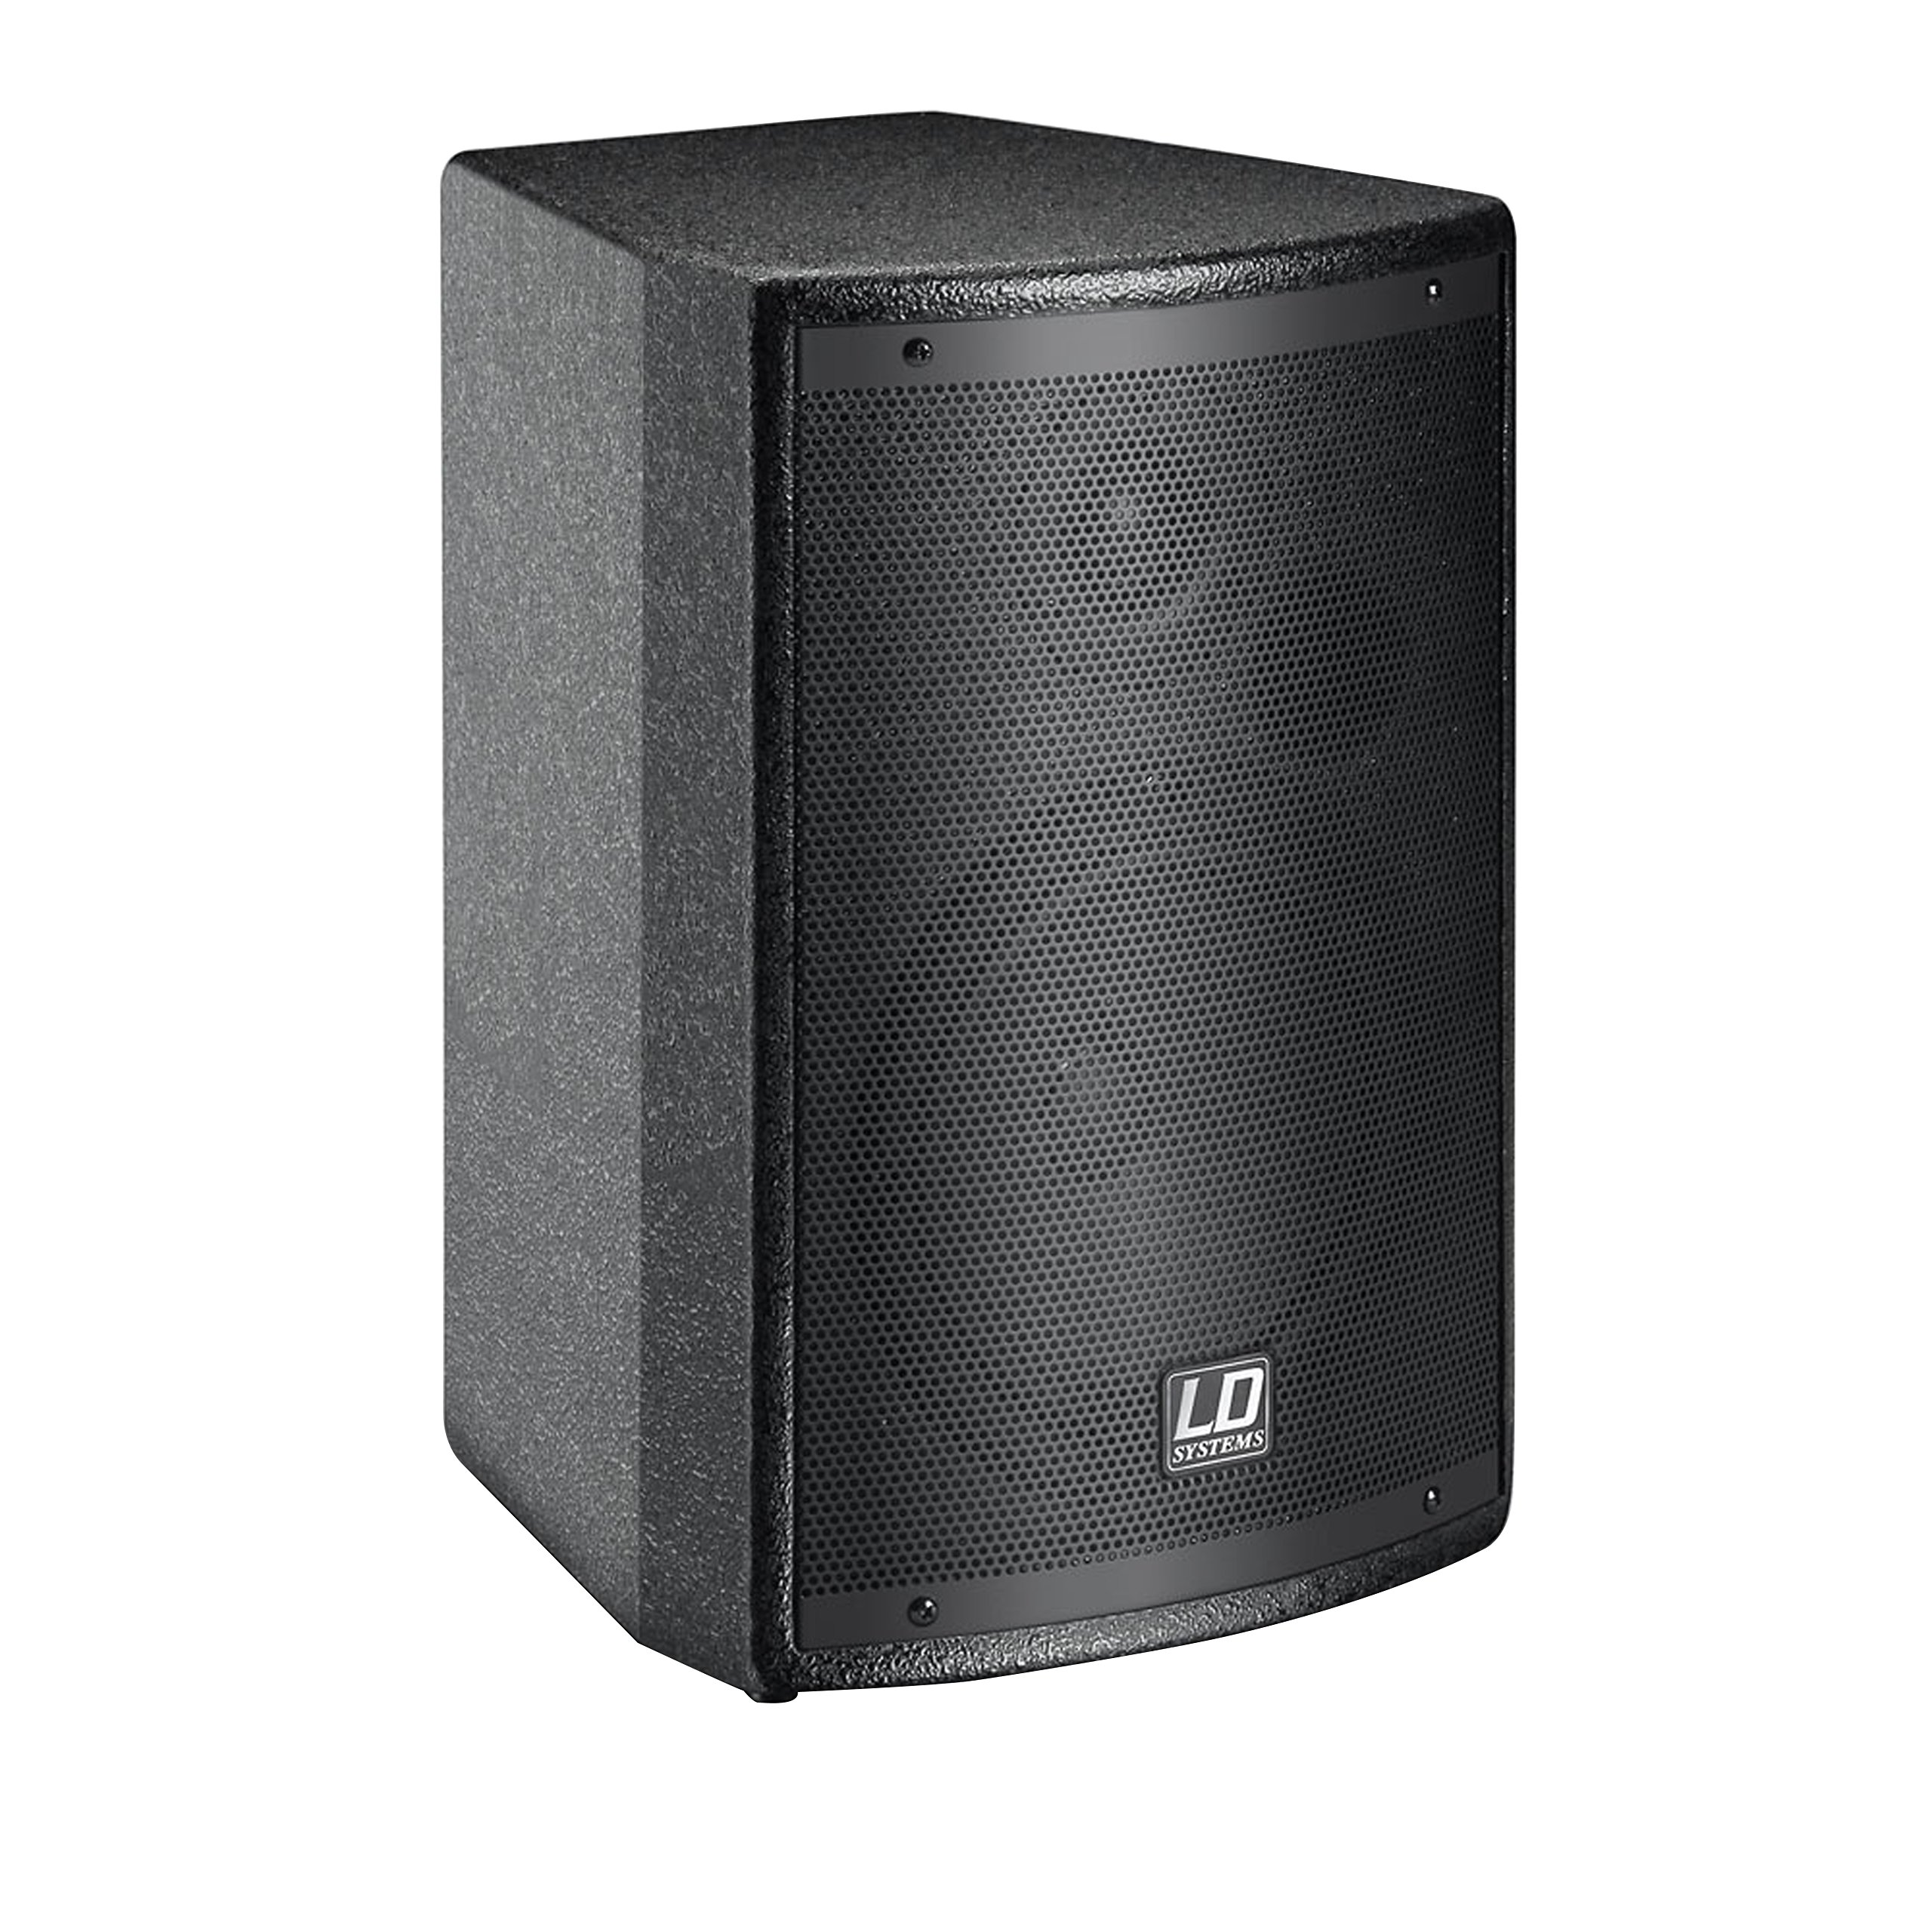 LD Systems MIX6G2 Stinger 6.5-Inch 2-Way PA Passive Speaker by LD Systems